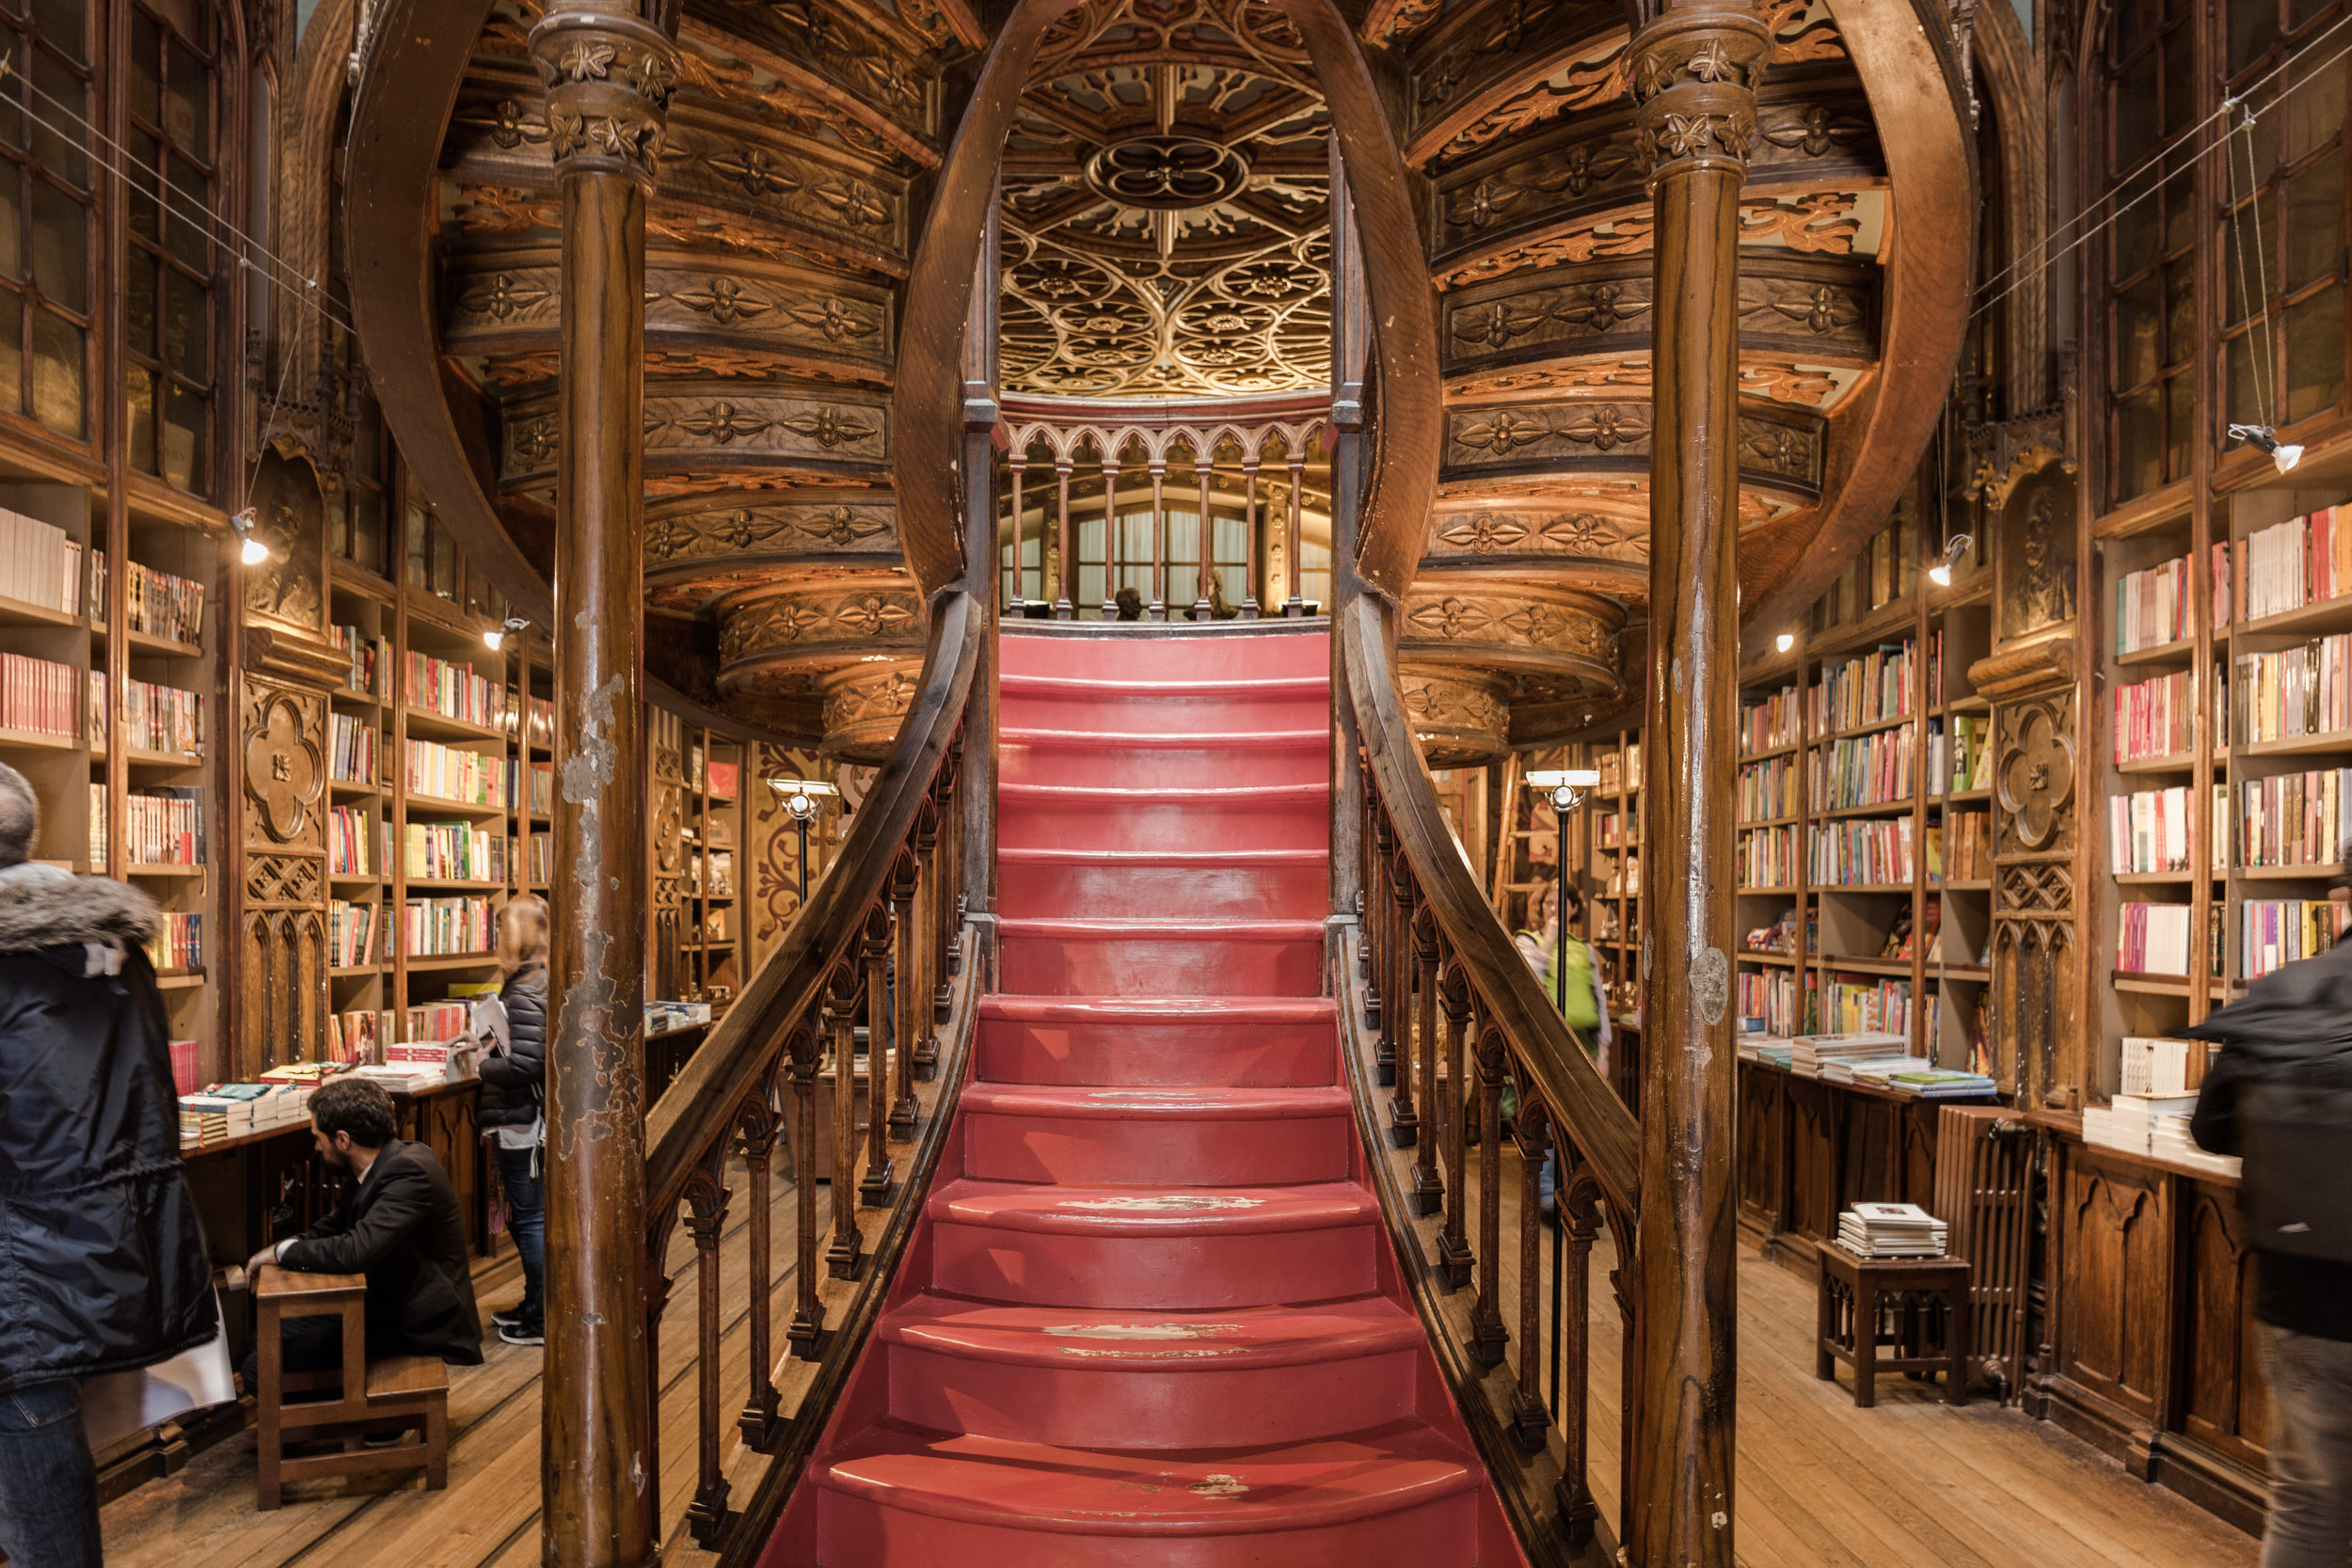 Wooden staircase inside the bookstore